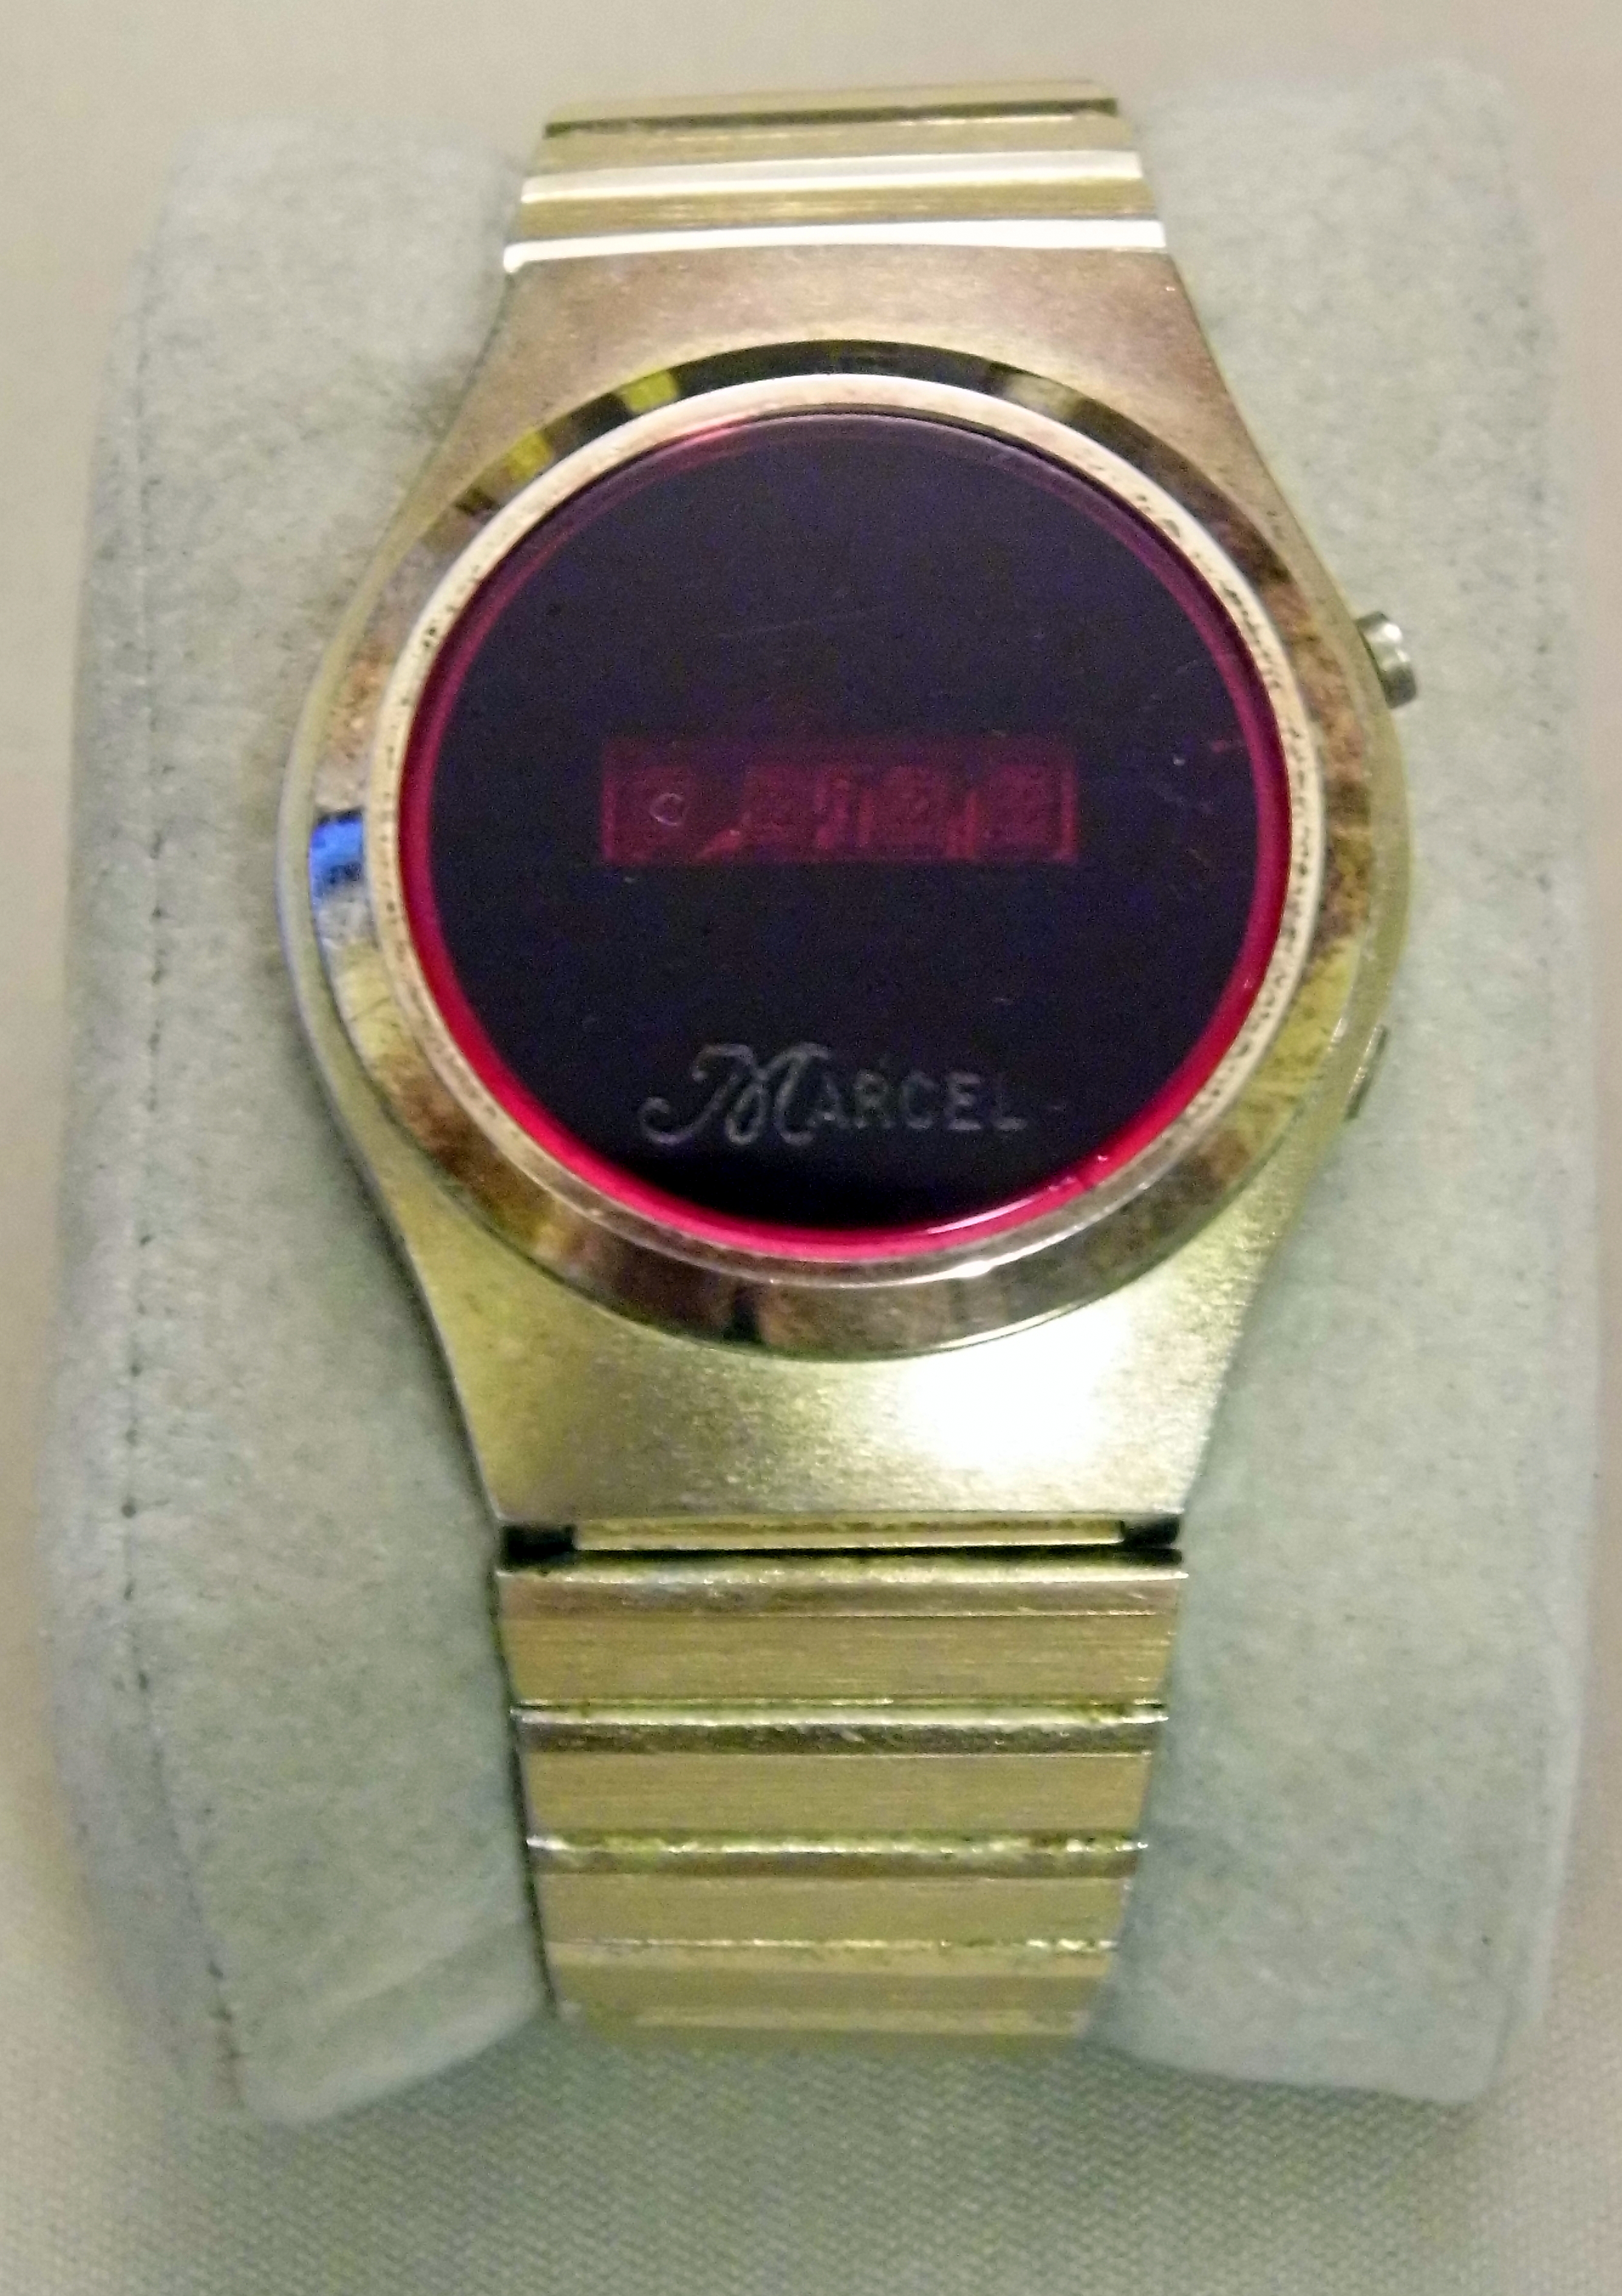 Even Vintage mens wristwatches like it's